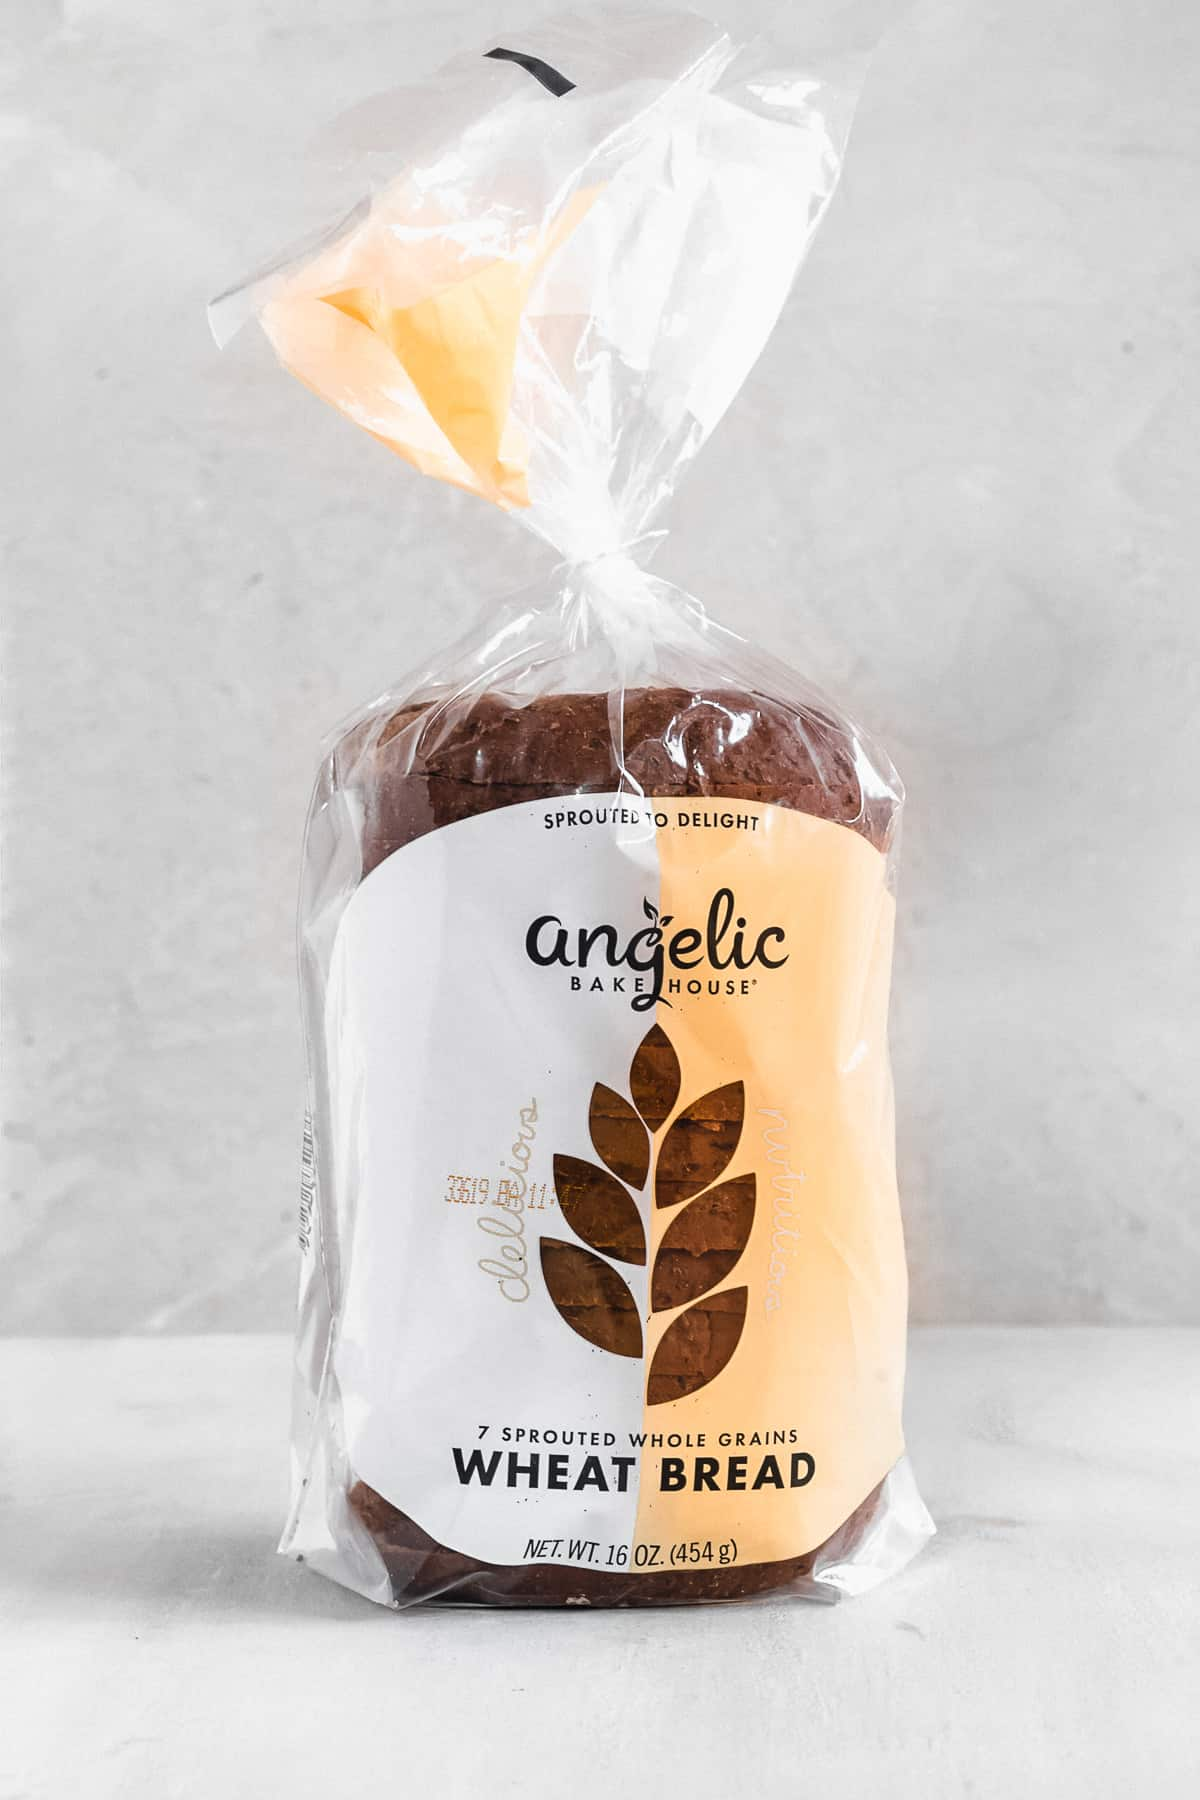 Side view photo of a loaf of Angelic Bakehouse Wheat Bread sitting on a white marble slab.